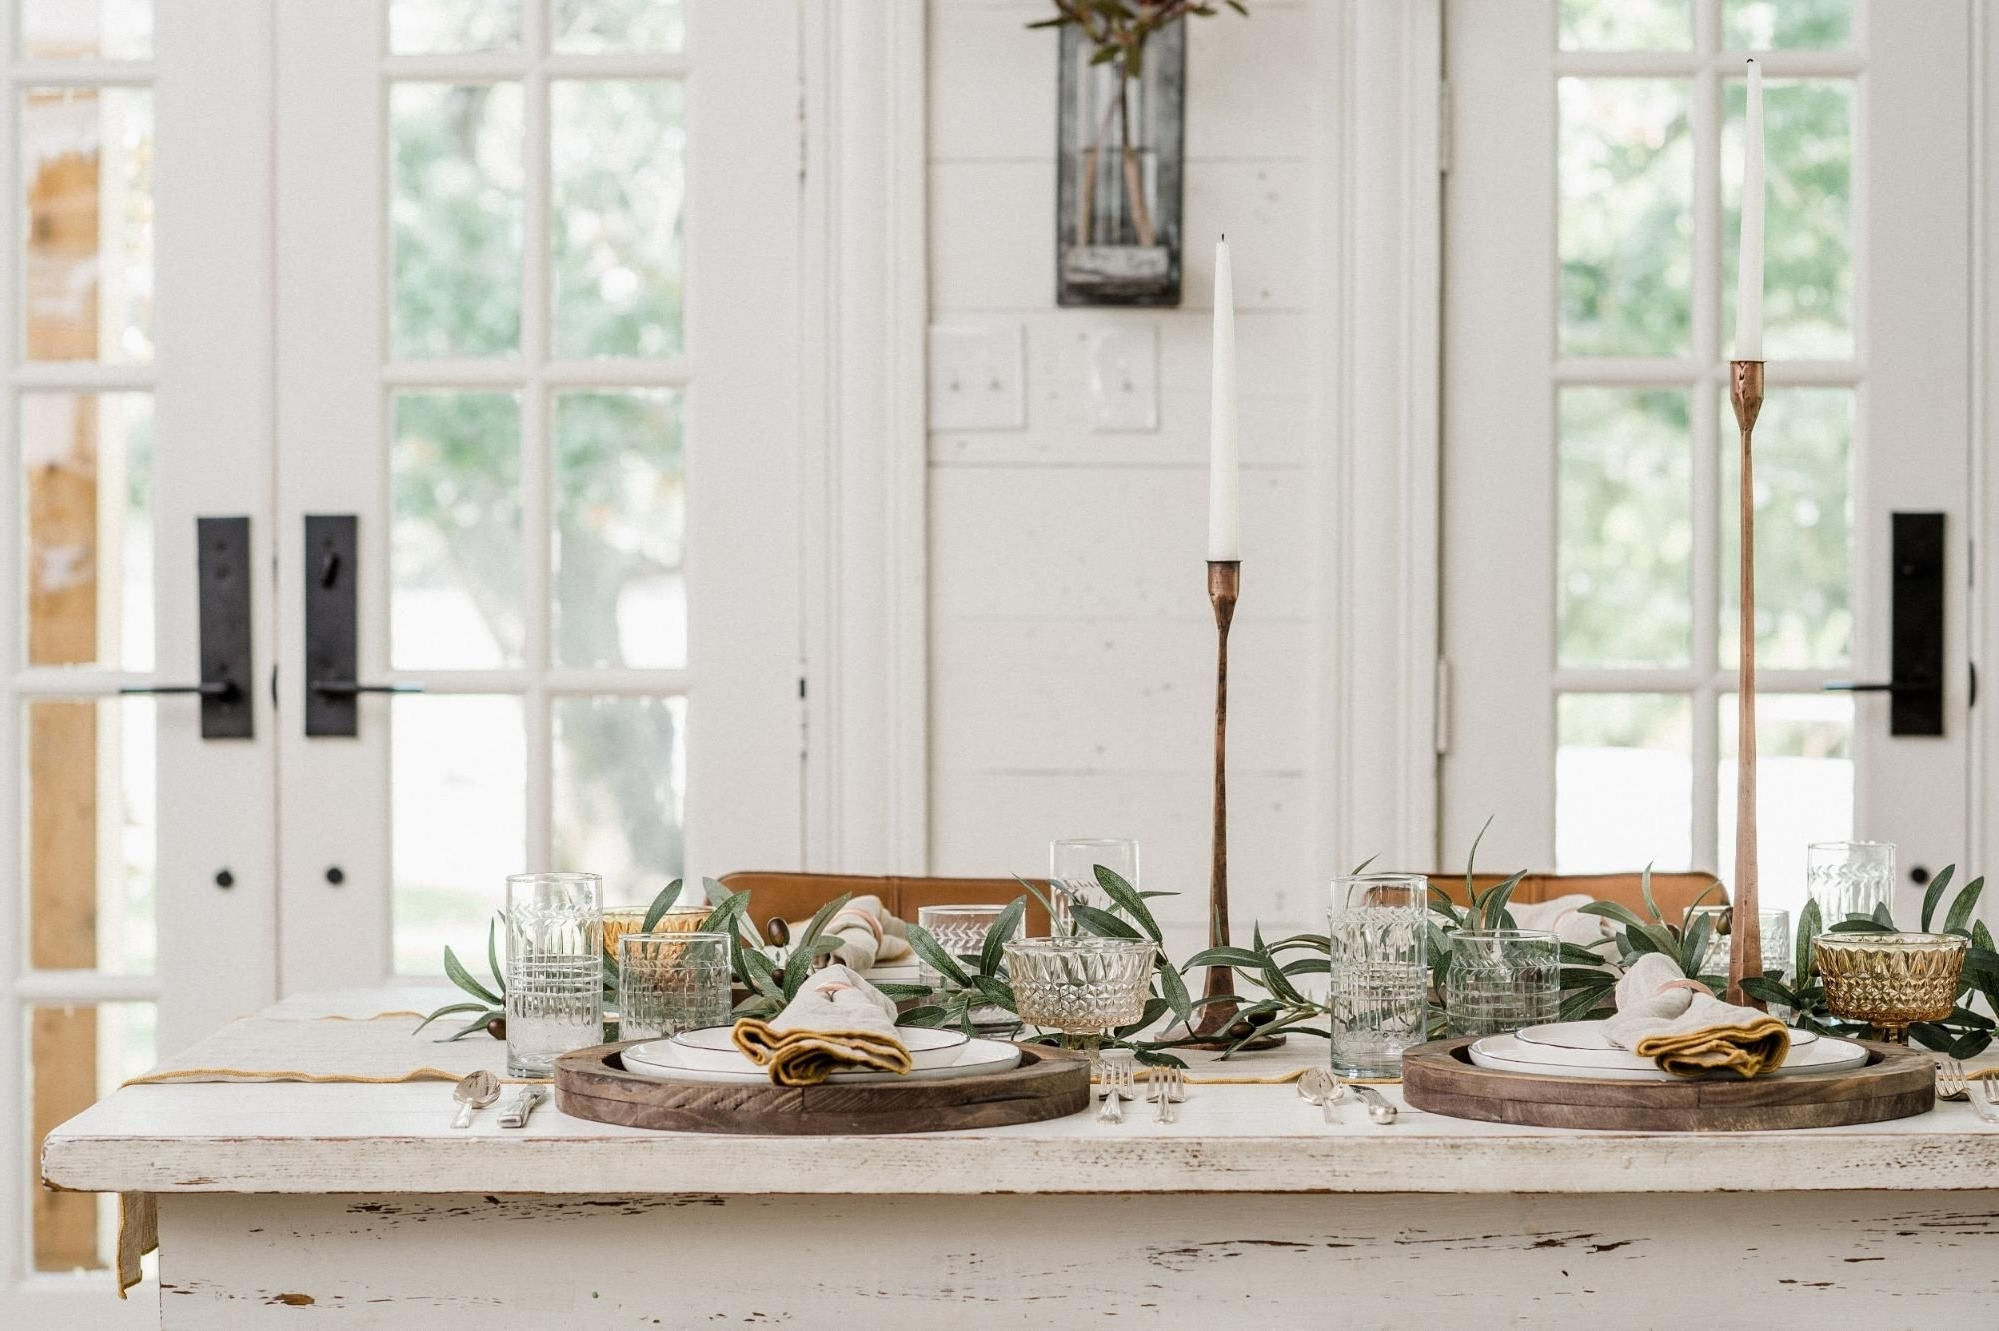 Joanna Gaines'S Thanksgiving Tablescape Joanna Gaines 10+ Joanna Gaines Dining Room Decorating Ideas Inspirations